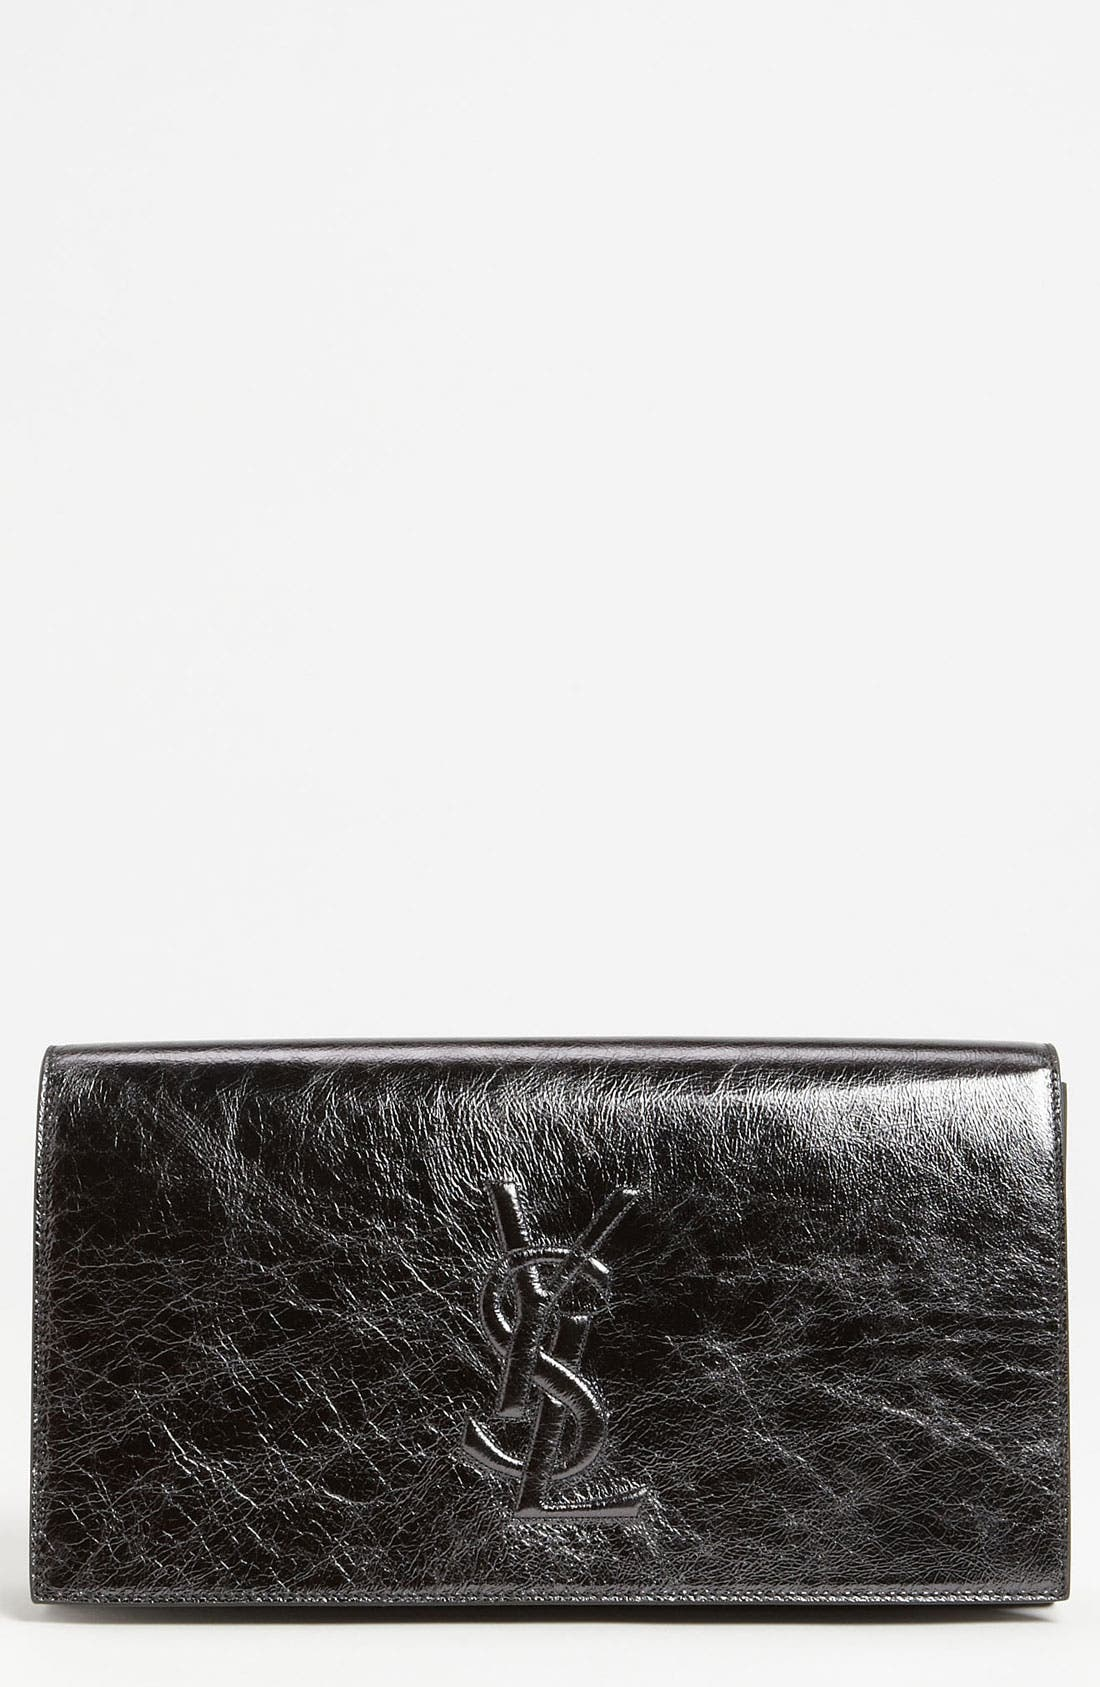 Alternate Image 1 Selected - Saint Laurent 'Belle de Jour' Clutch